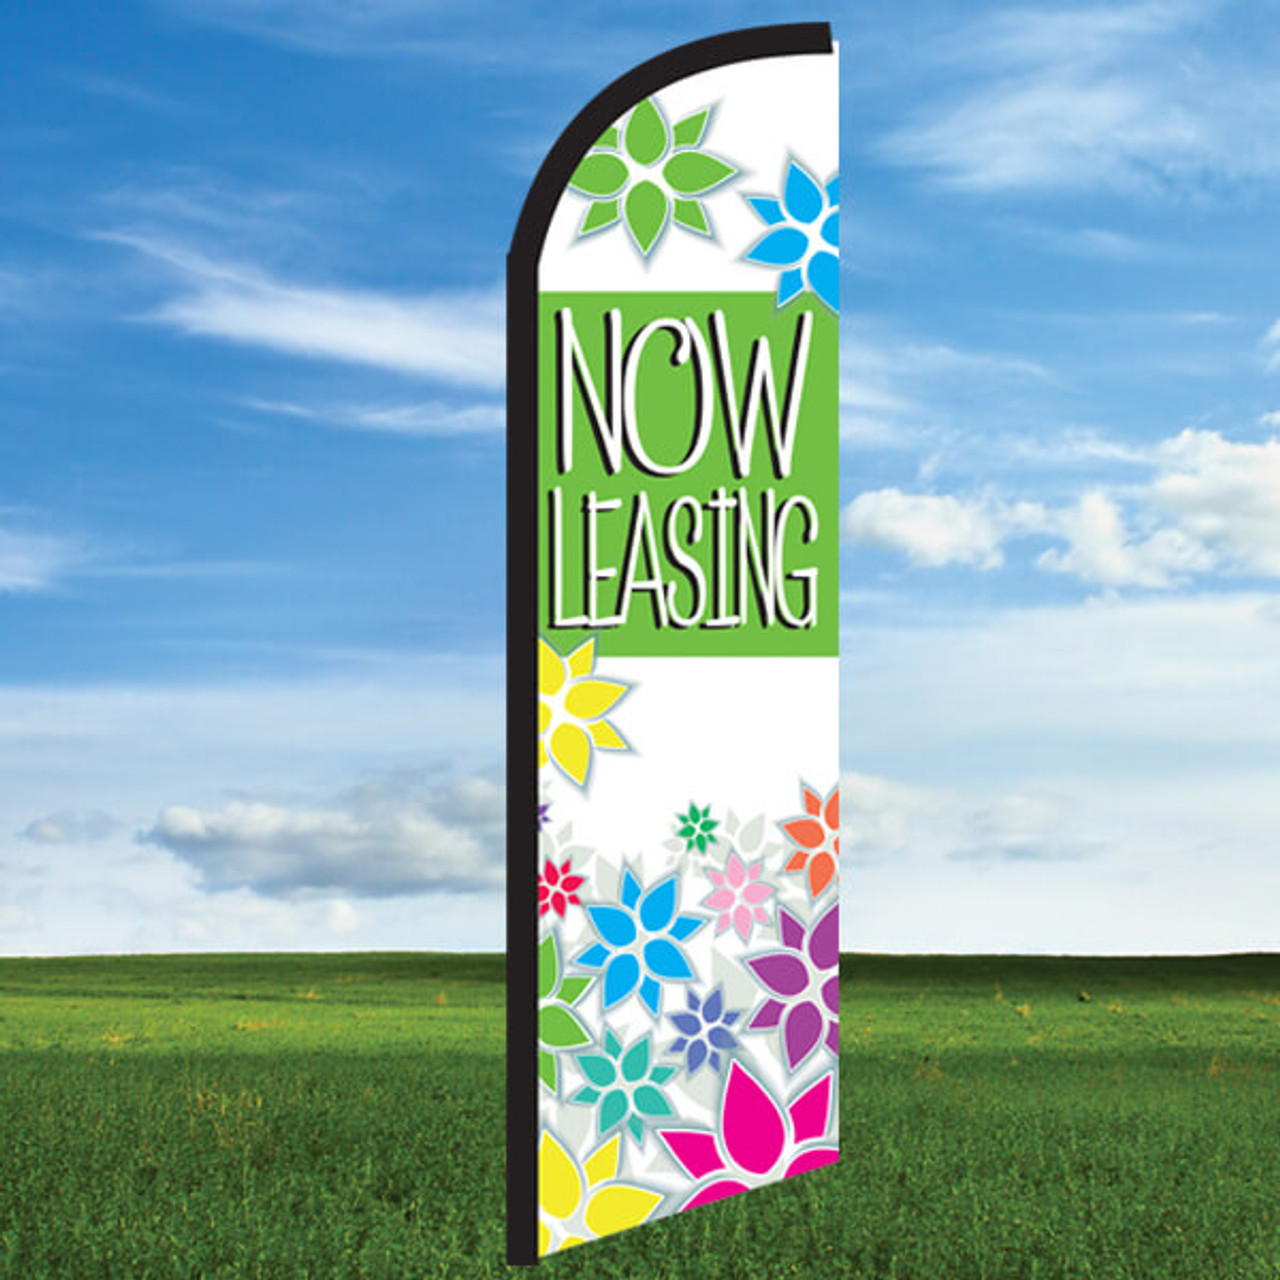 Festive Flowers: Now Leasing- Widebody Windleasers 24/7 Flag Only